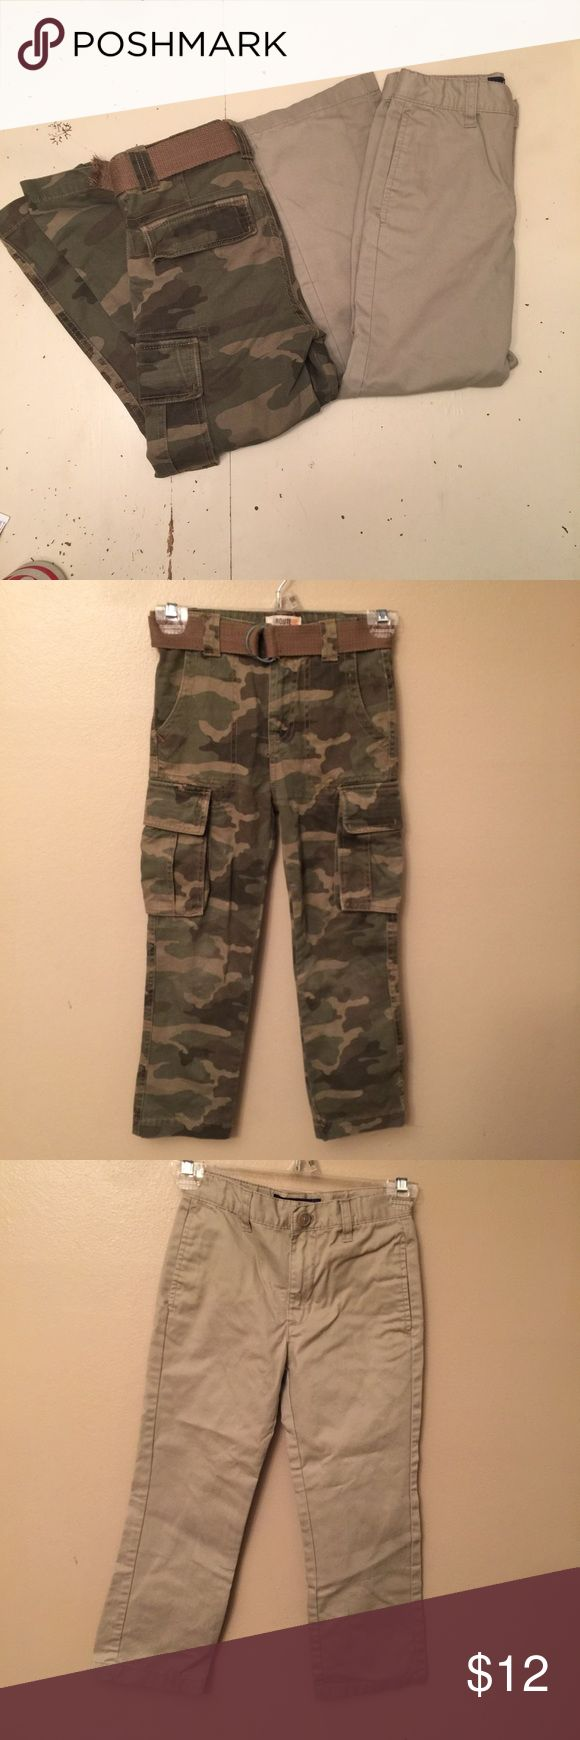 Boys size 7 2 pair bundle! 2 pairs of boys pants size 7.  Classic camouflage printed pants with adjustable waist and belt included! Tiny hole on booty, small mark on front see pic 4.  Khaki jeans from Cherokee. Adjustable waist! Small mark on front from storage. Could wash off!  Very good preloved condition! Check out my closet to bundle and save even more! Cherokee Bottoms Jeans